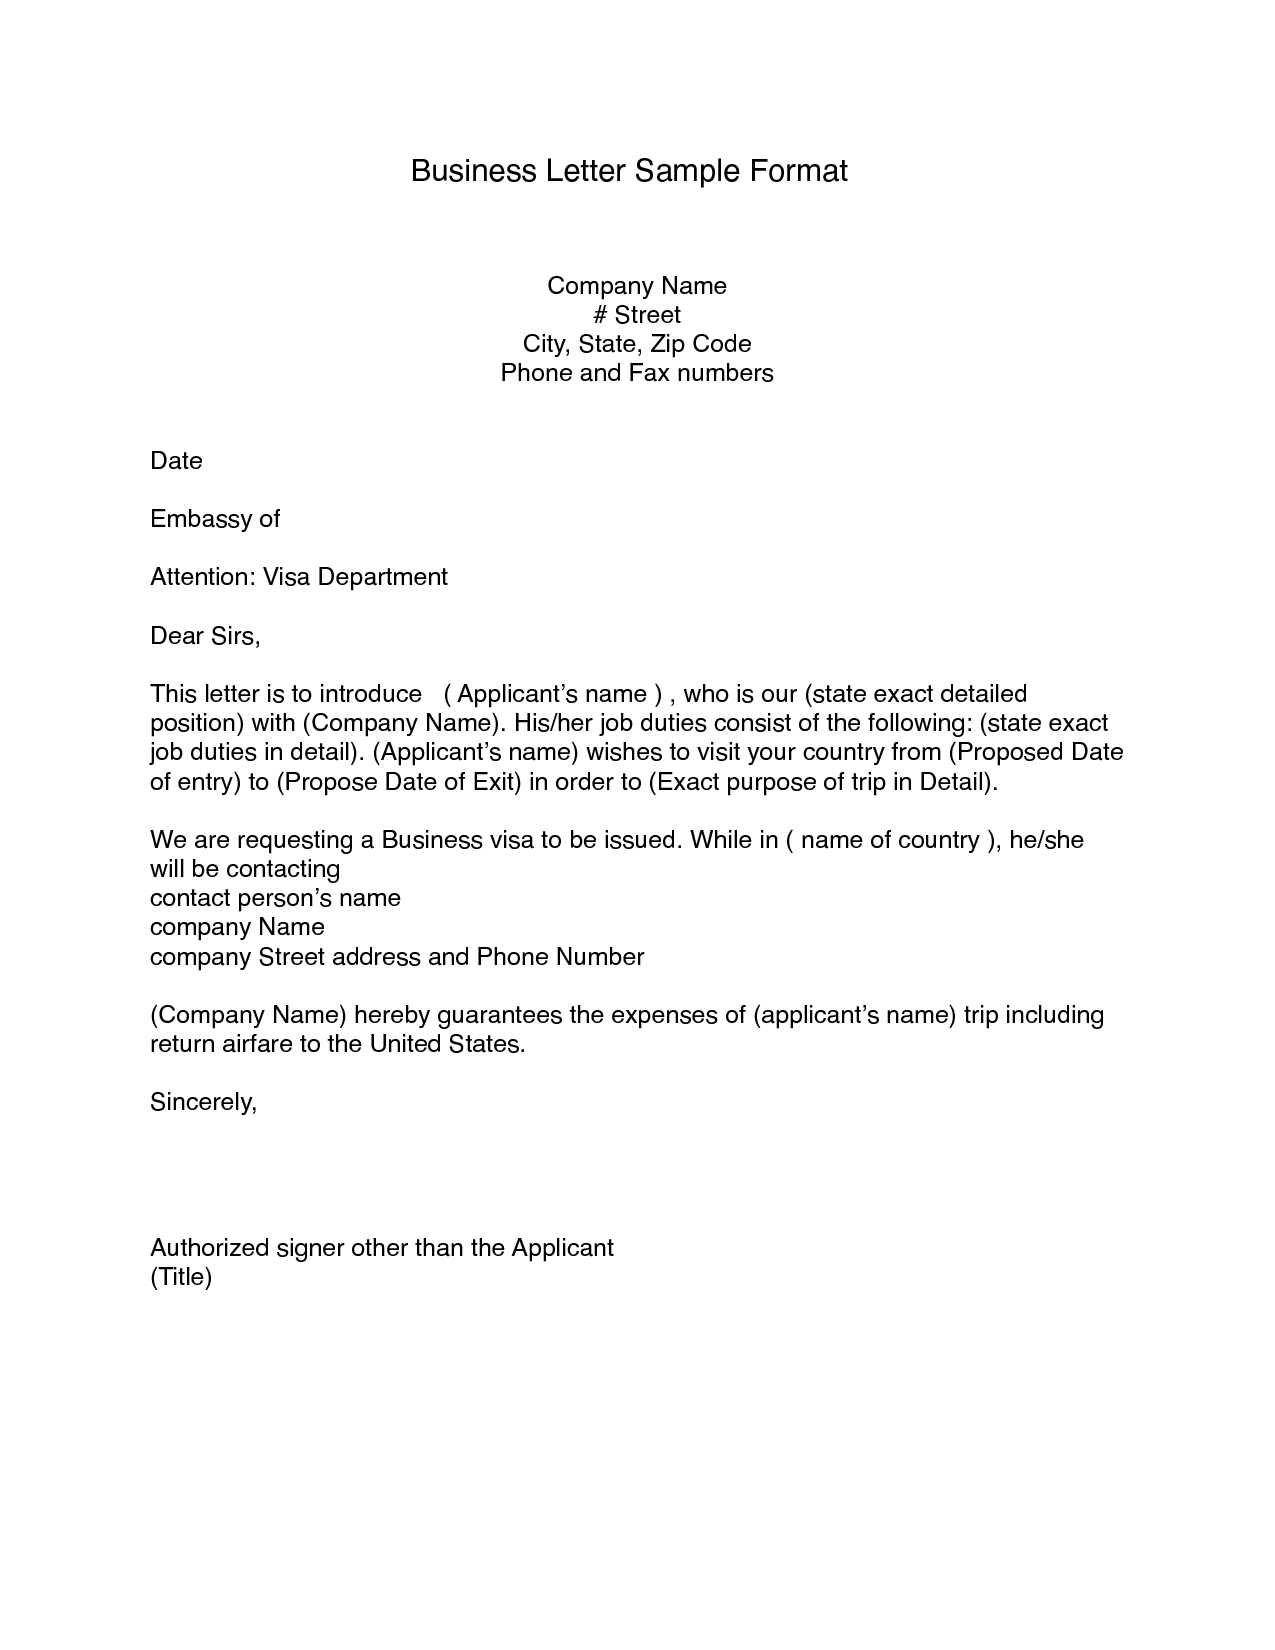 Business Letter Examples | Free 8 Printable Business Letter Format Block Style Pdf Download